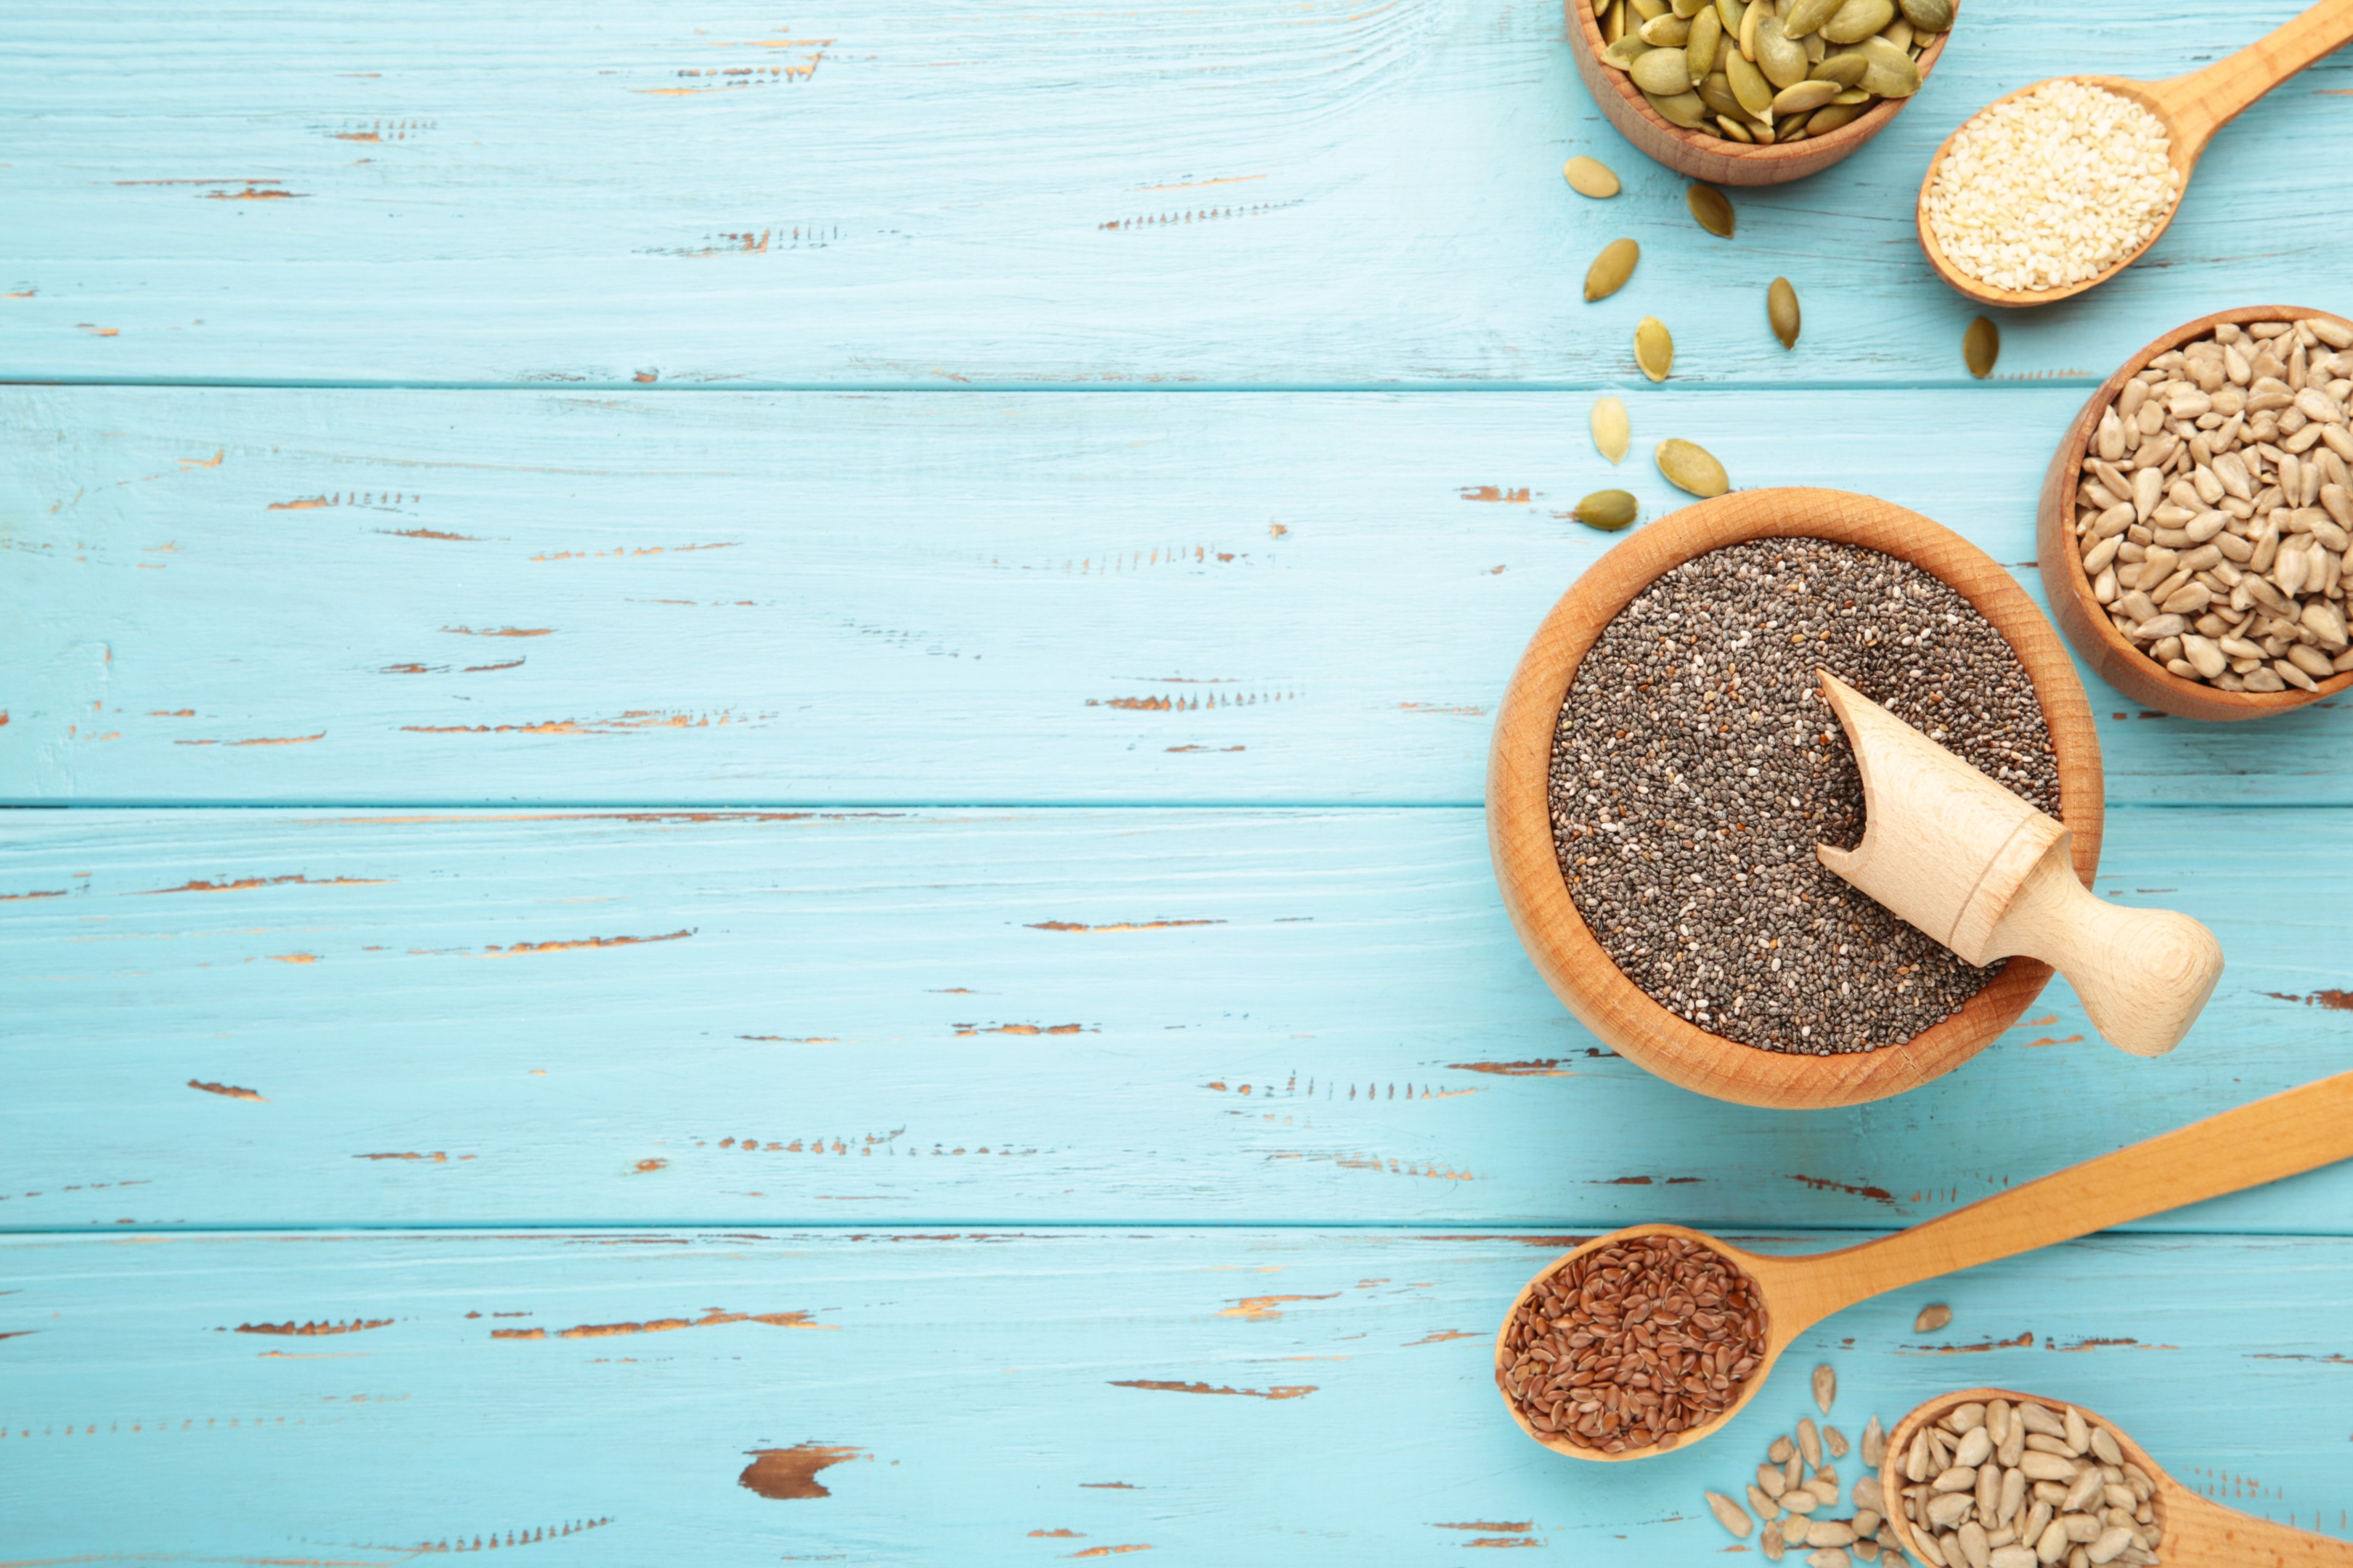 Sesame and pumpkin seeds and sunflower seed and flex seeds and chia seeds